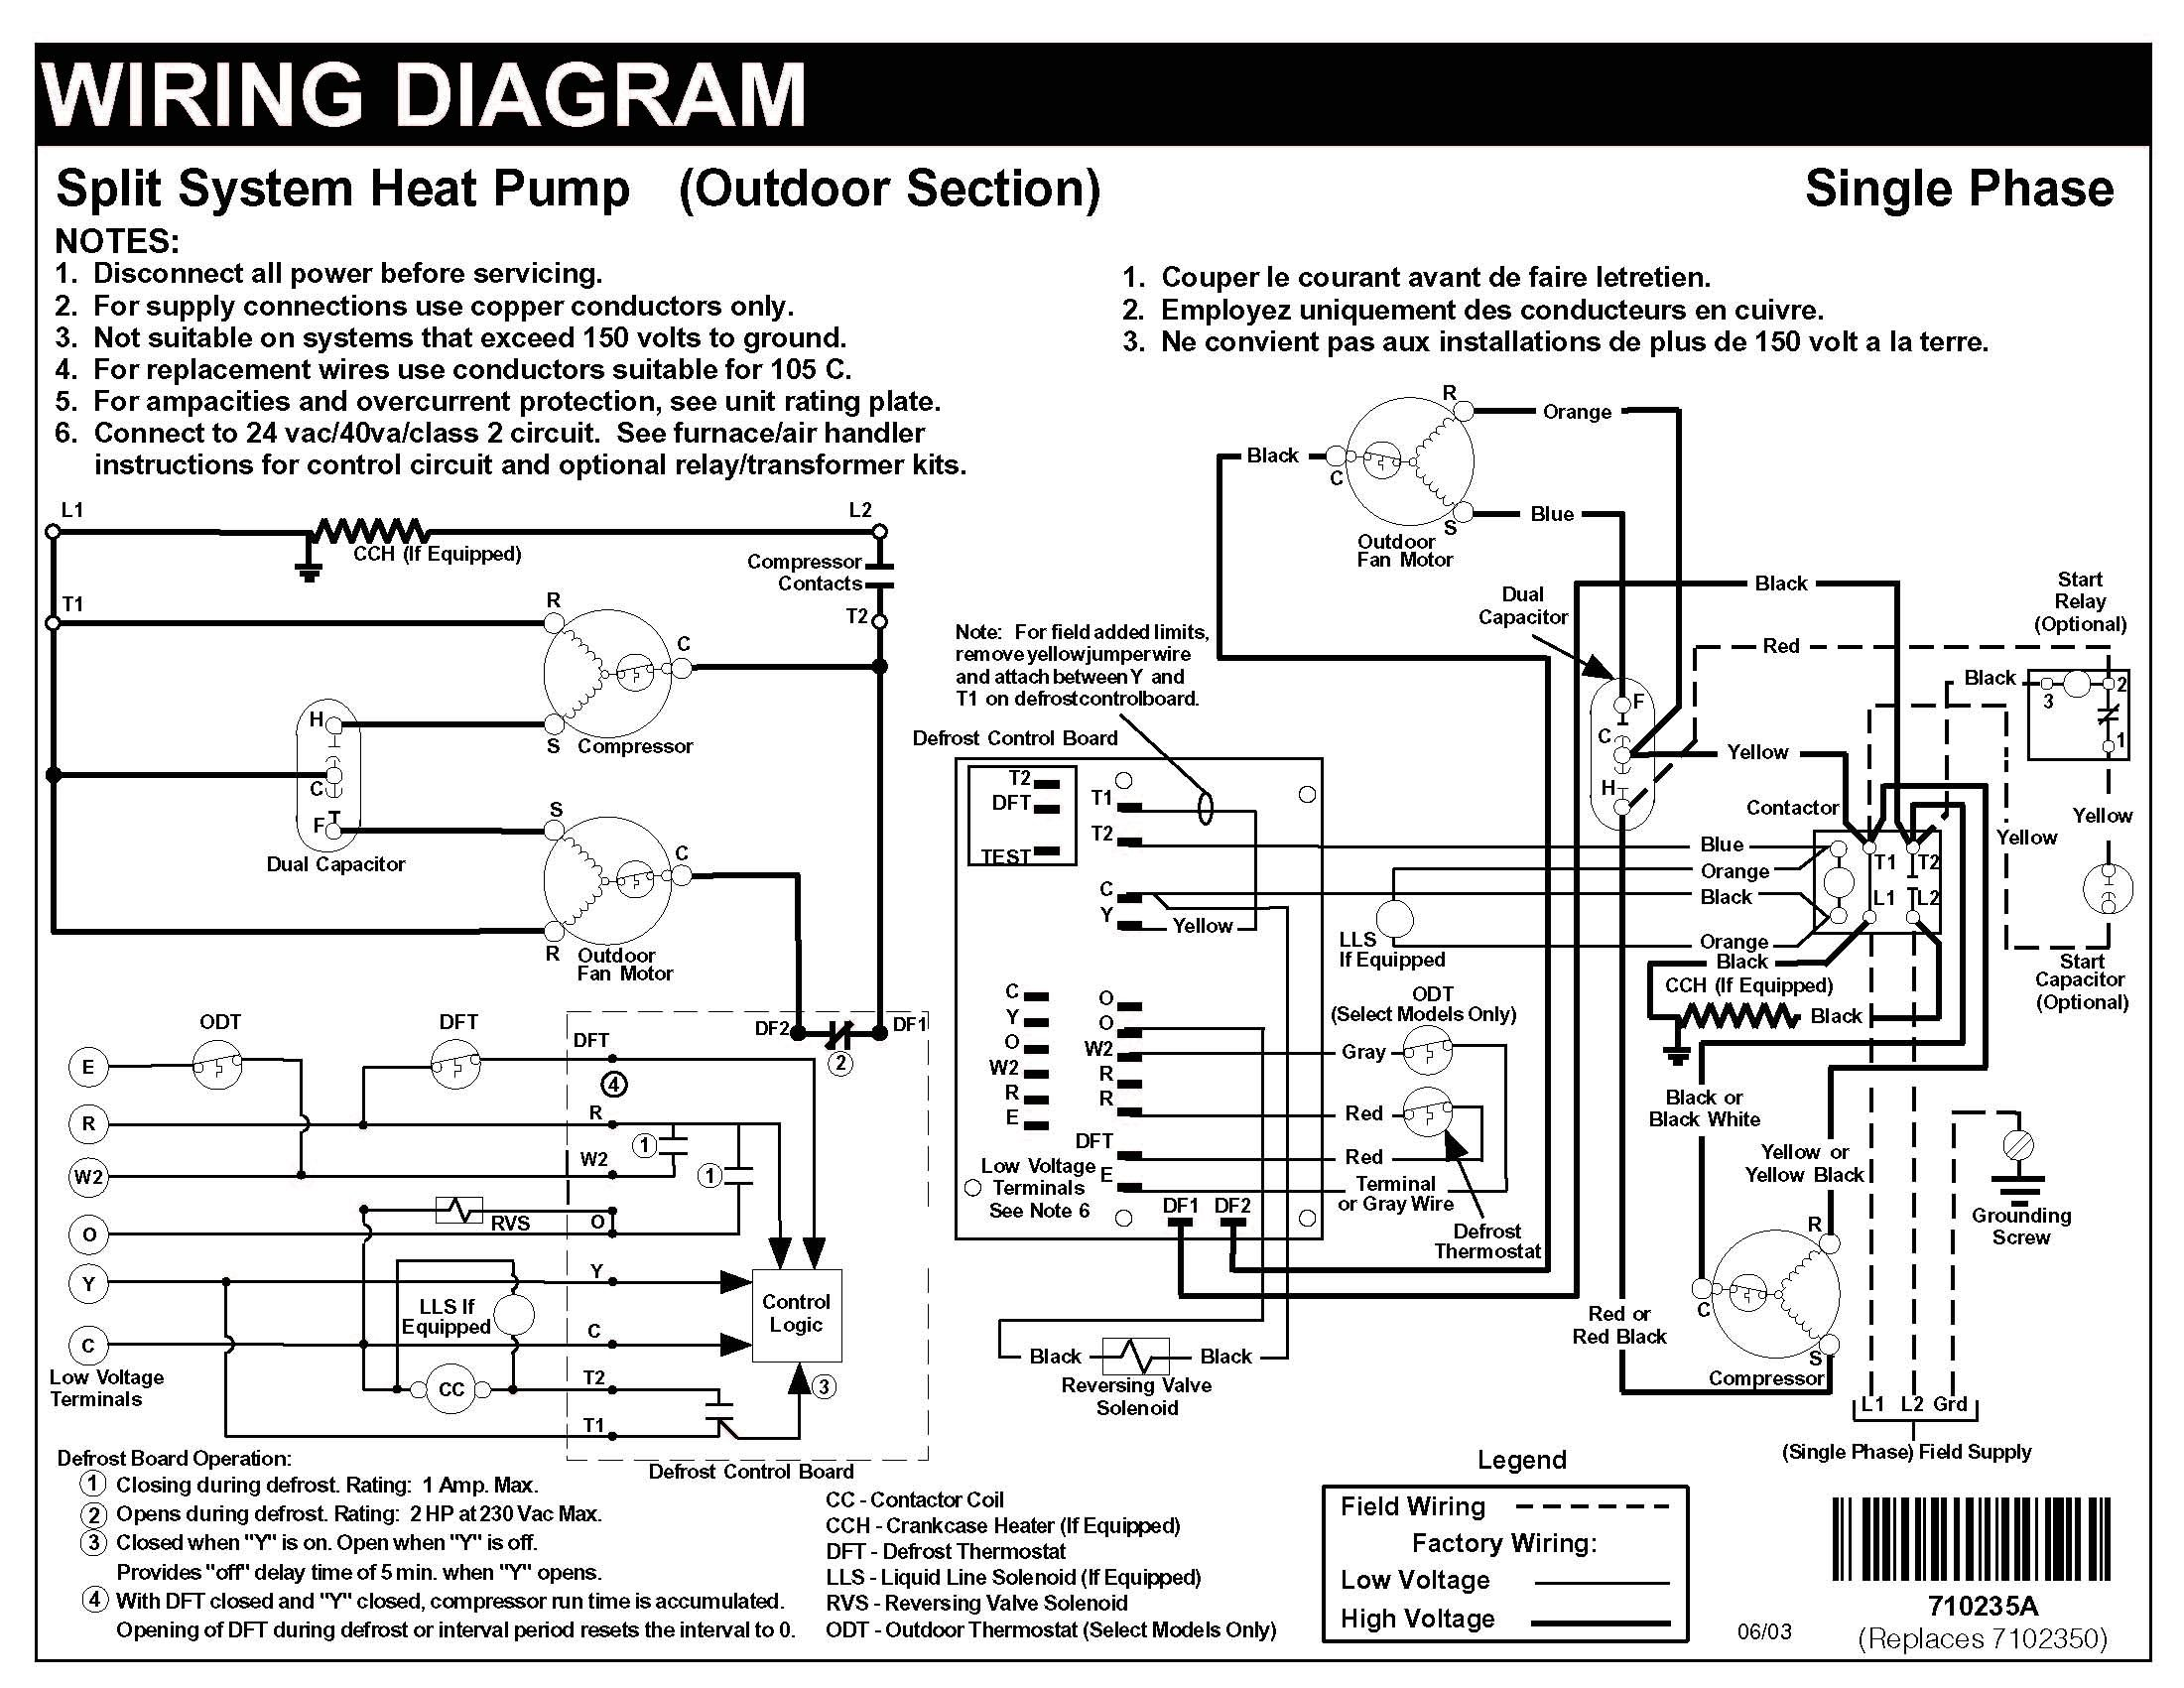 e08d295e6be2ee8be1bef44ac29add79 heat pumps residential heat pumps heat pump ratings lennox basic heat pump wiring diagram at webbmarketing.co